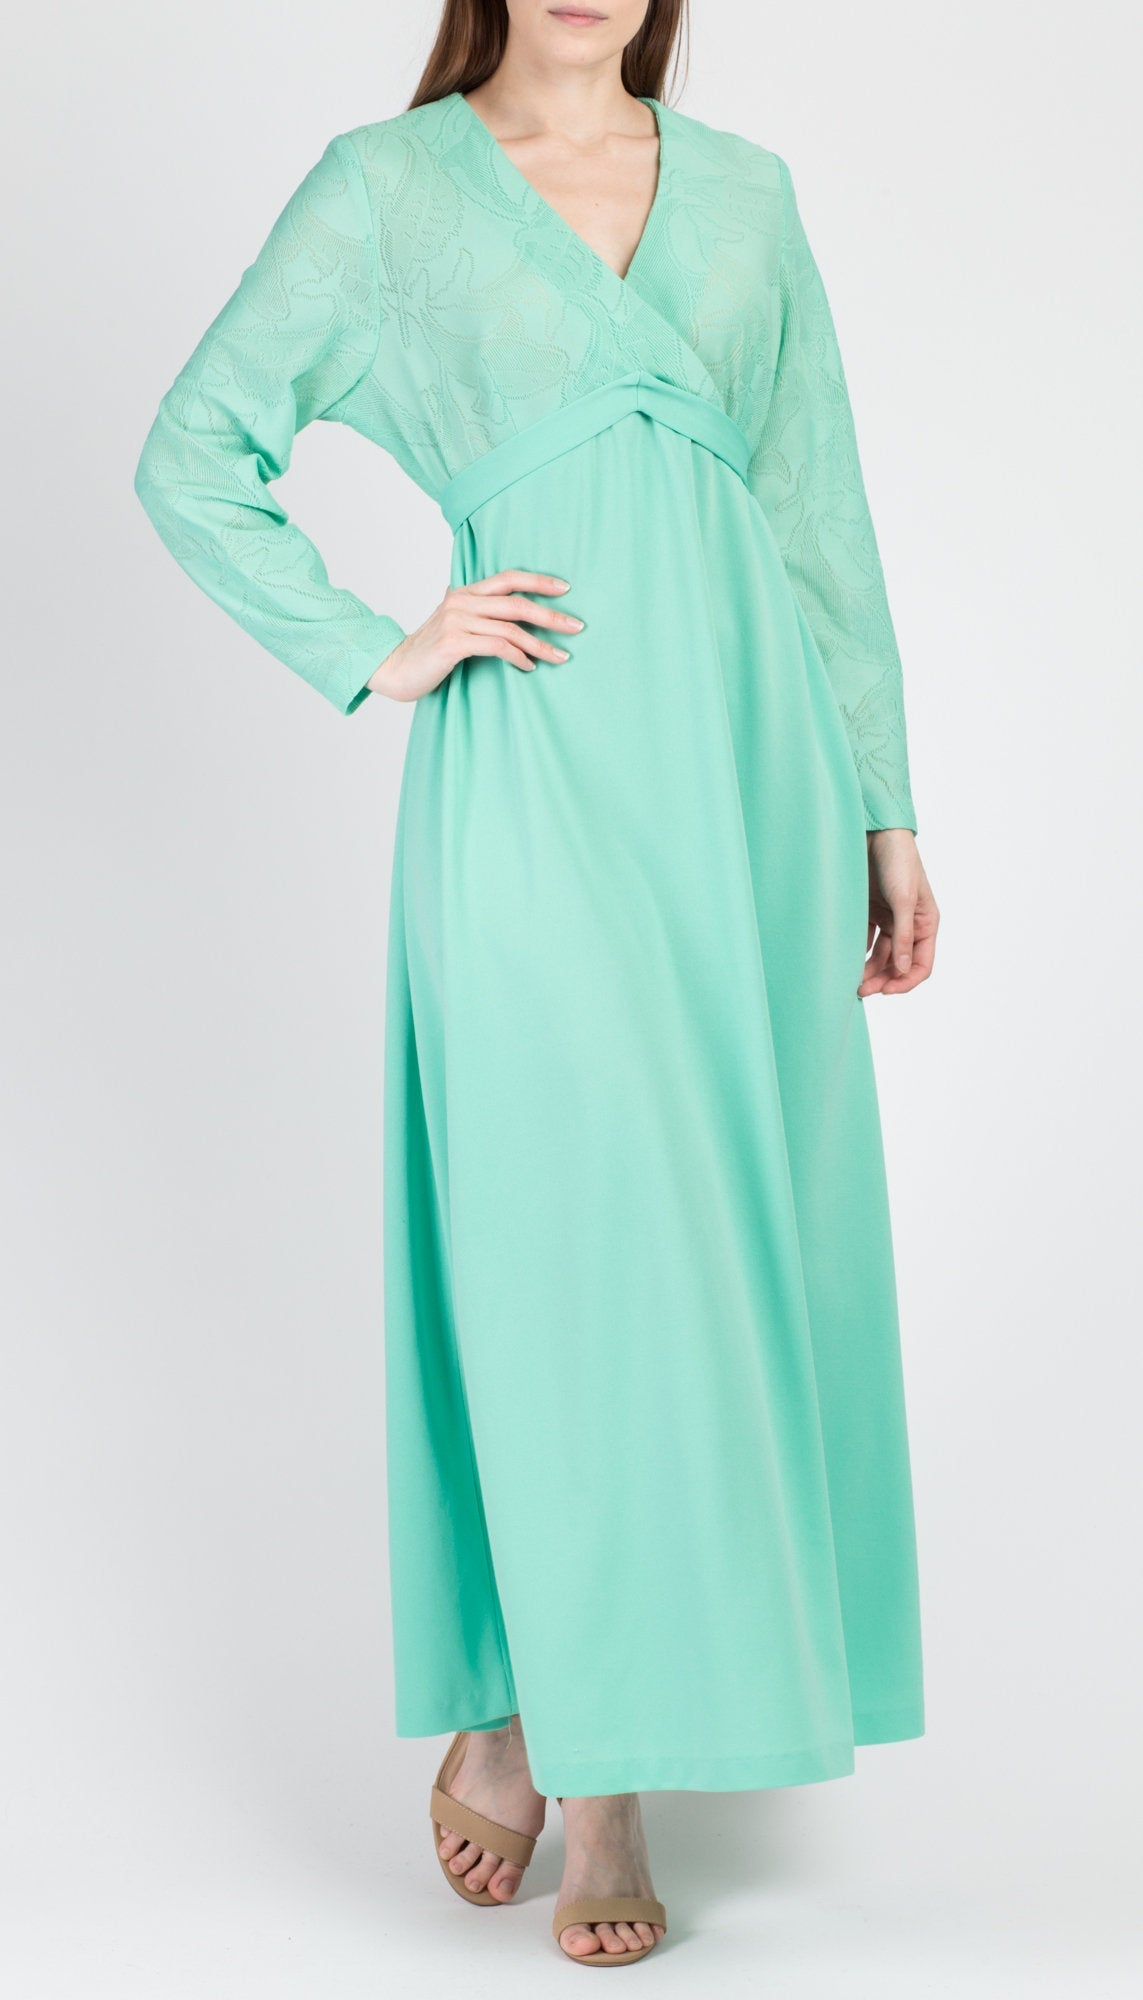 70s Sea Creature Mint Green Maxi Dress - Extra Large